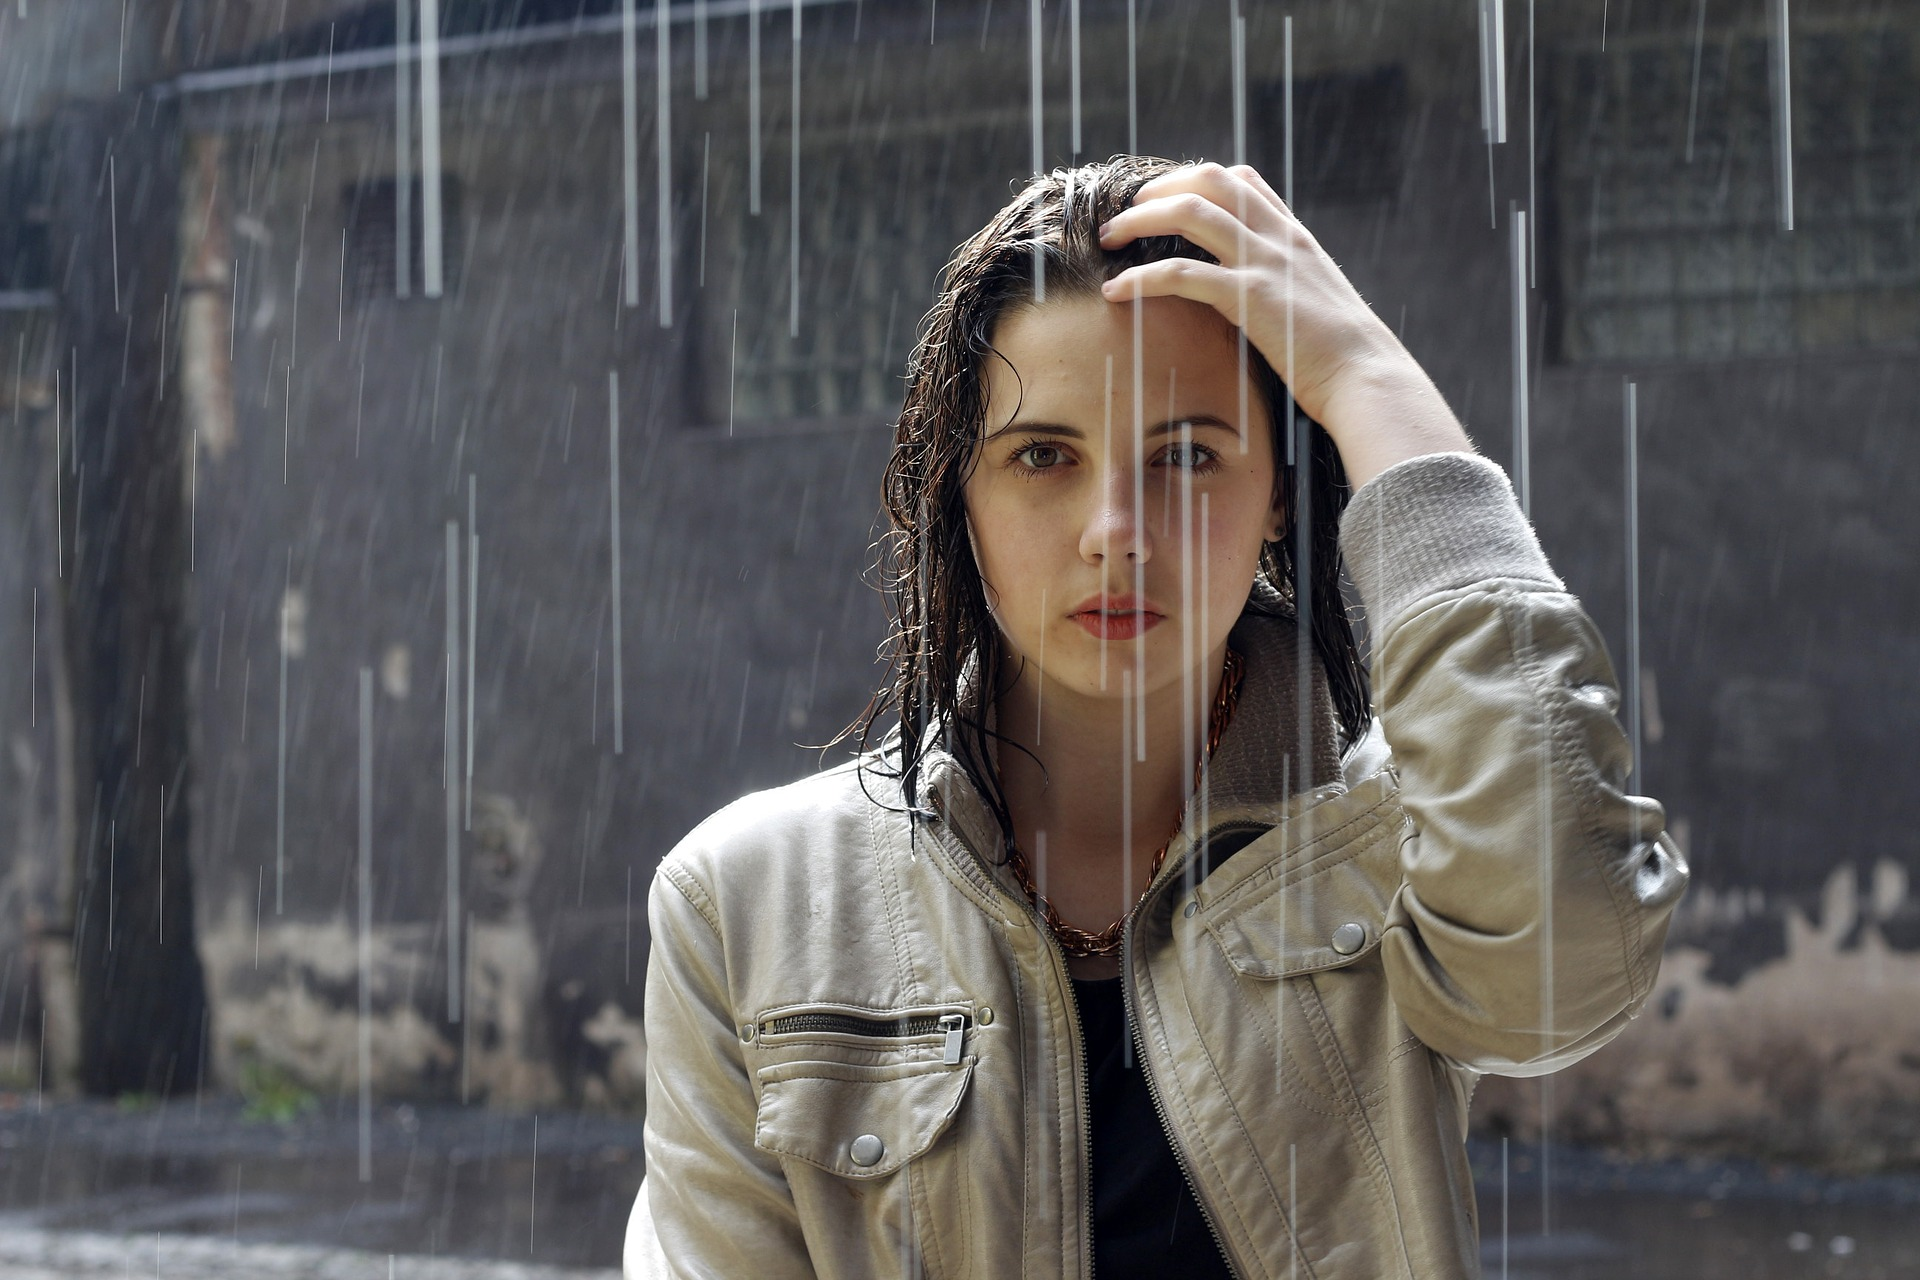 Woman embracing the rain to reduce hay fever symptoms